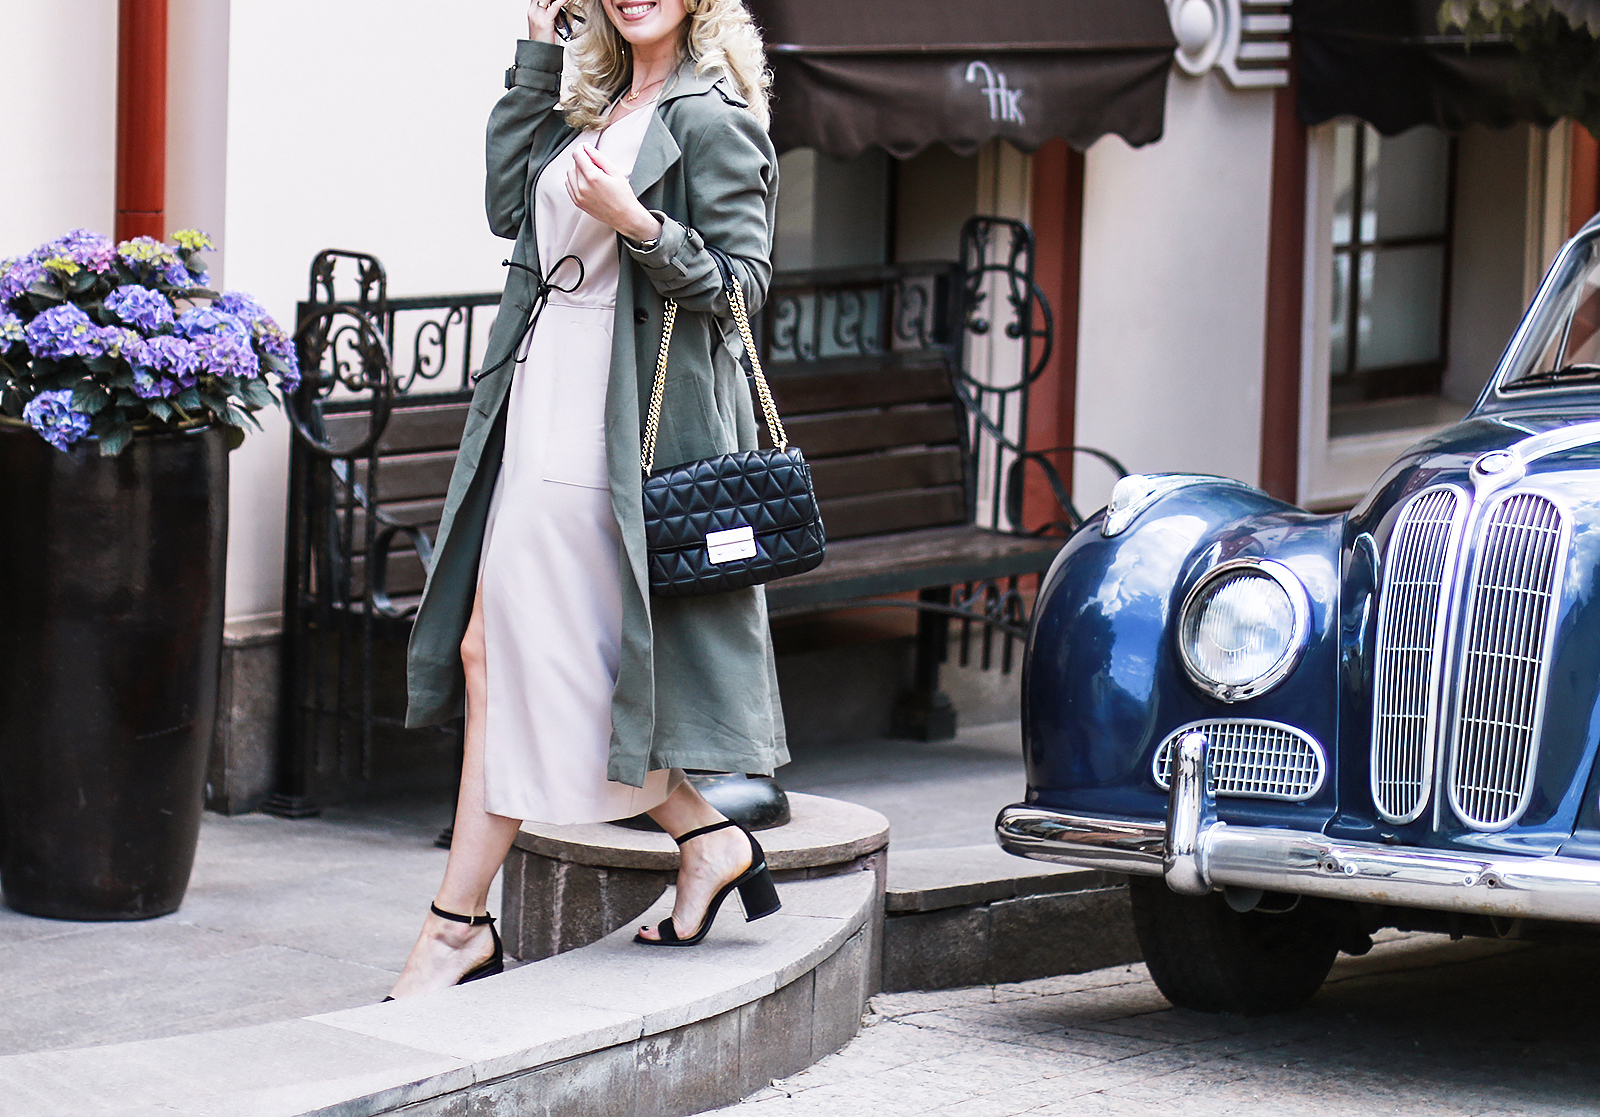 rita_maslova_ritalifestyle_trendsbrands_dress_trenchcoat_MK_bag_